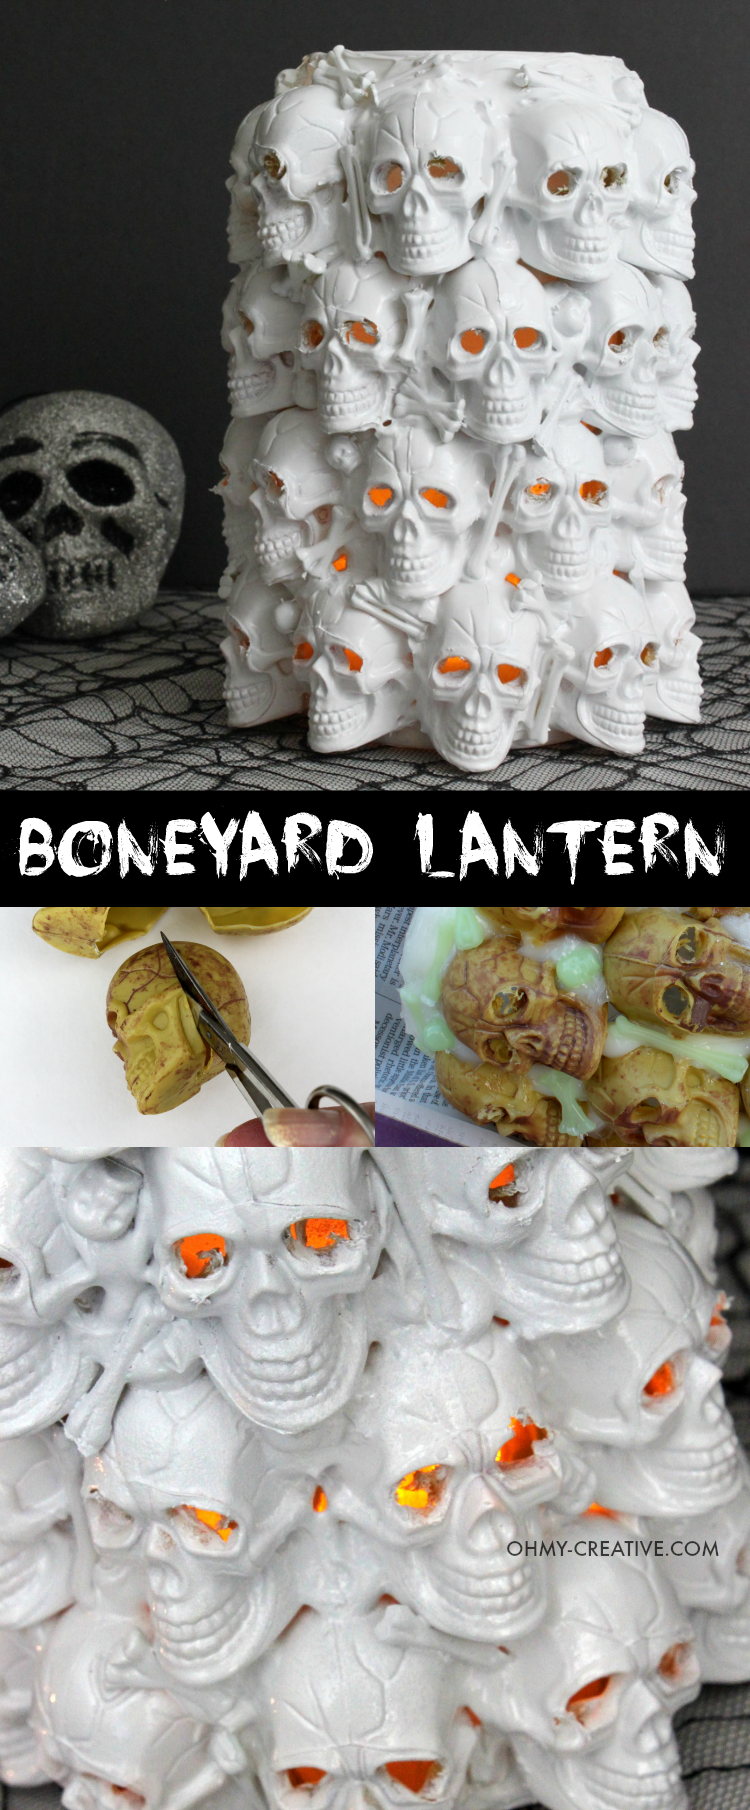 See how I made this Boneyard Lantern from plastic skulls, a dollar store necklace and a few other odd things to make this skull Pottery Barn knockoff. Absolutely one of the coolest things I have ever made!   |  OHMY-CREATIVE.COM